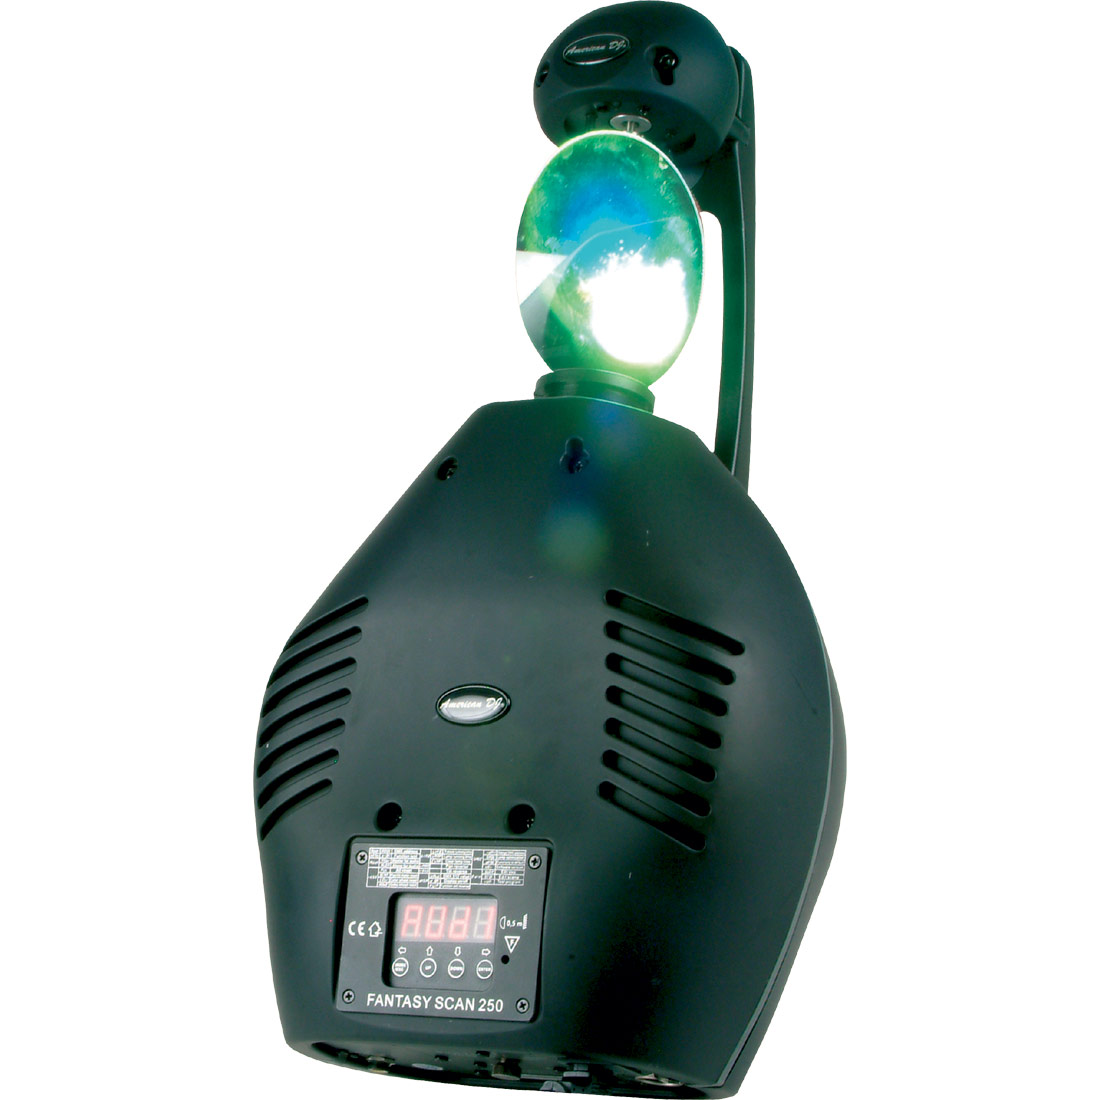 Fantasy Scan 250 - 250W discharge -